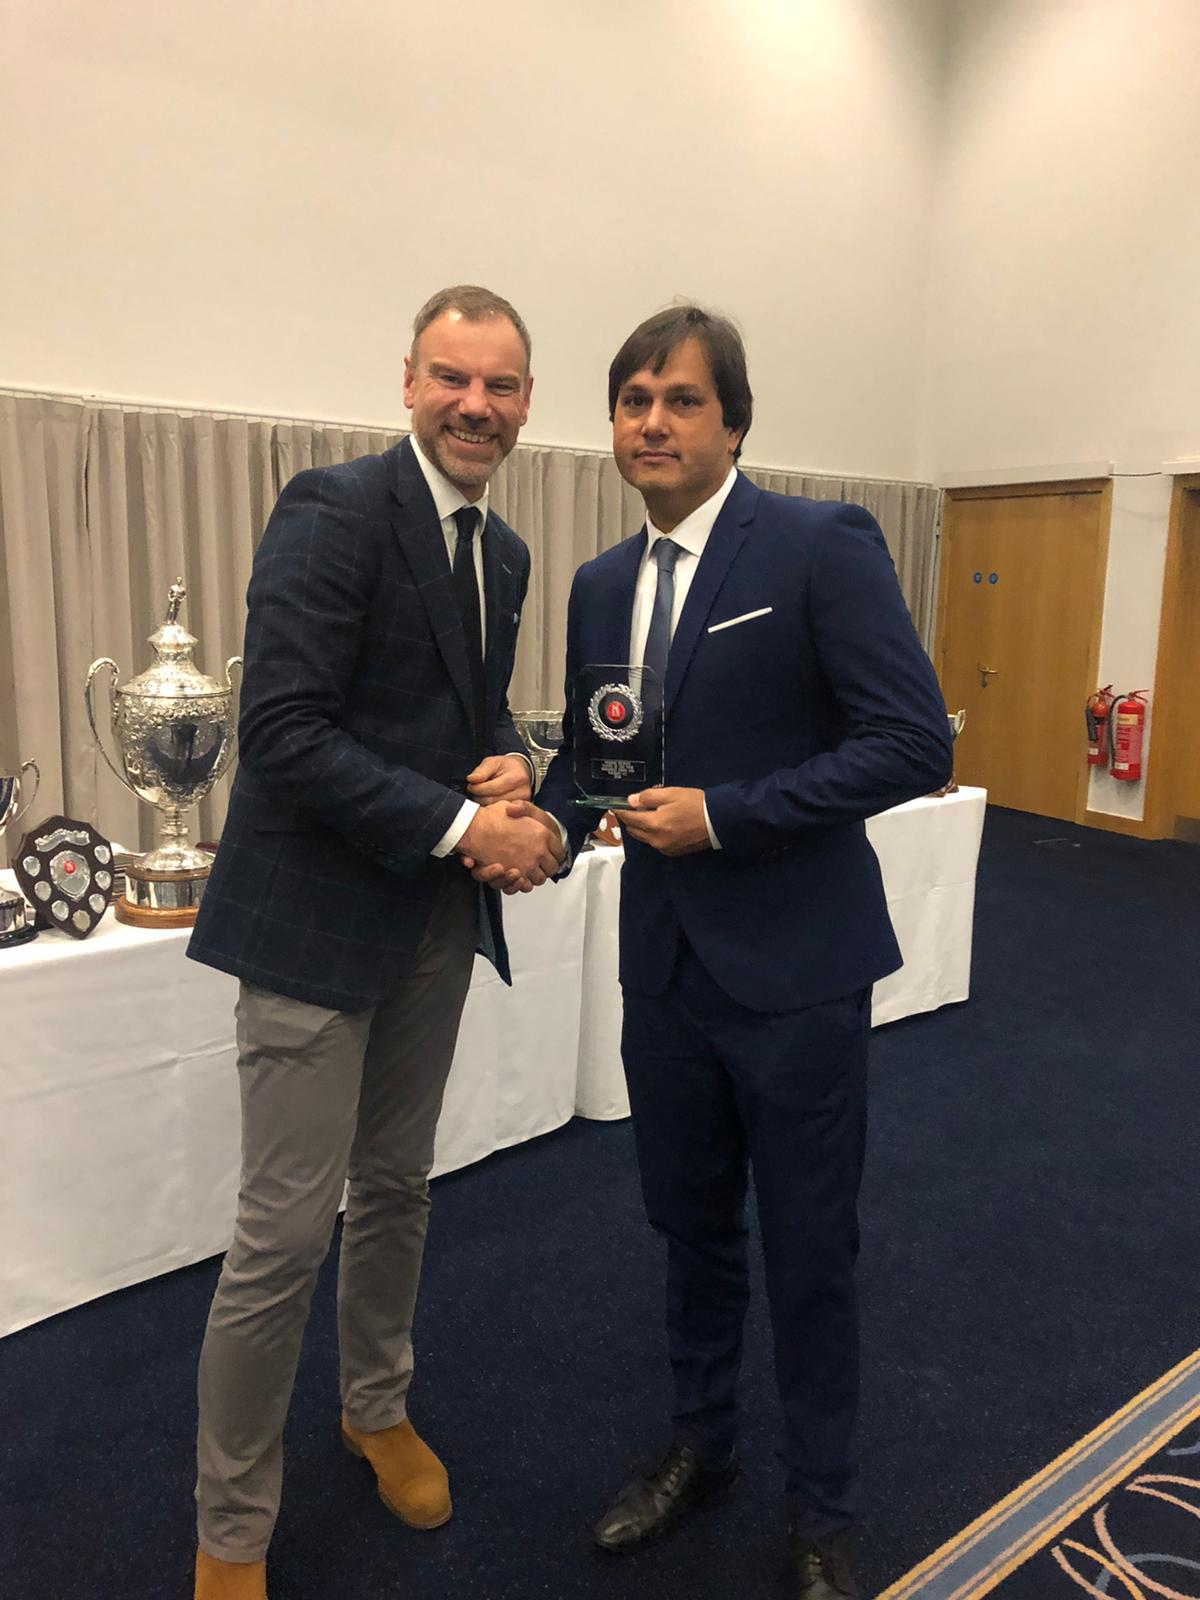 Warwickshire Cricket Premier Division Player of the Year